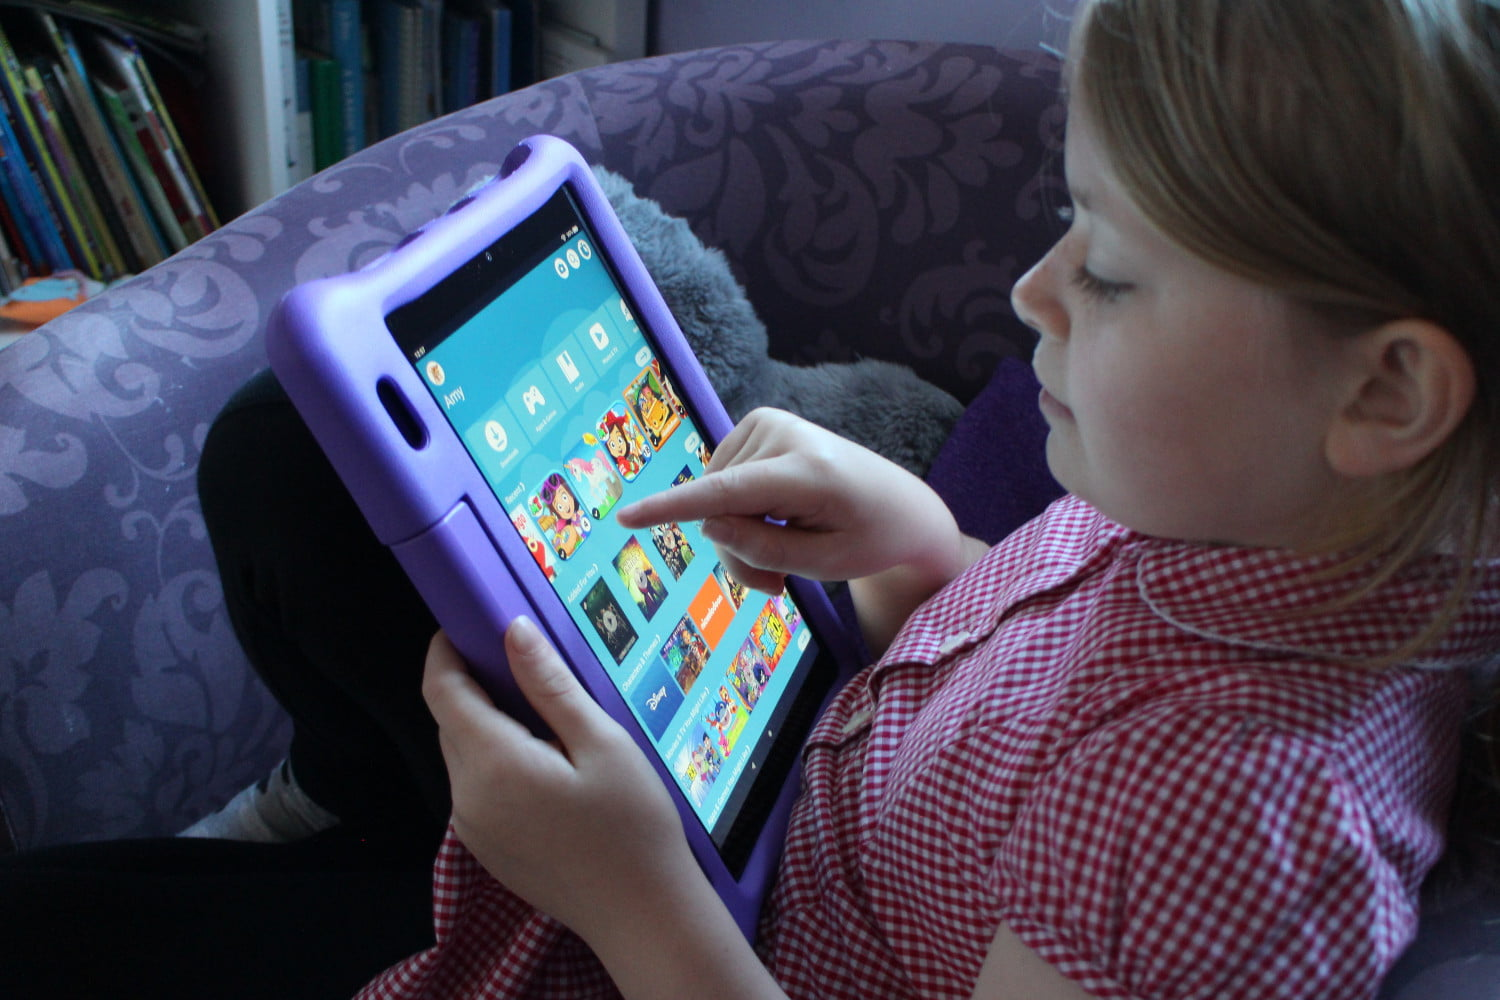 Amazon Fire Hd 10 Kids Edition Review The Best Big Tablet For Children Digital Trends